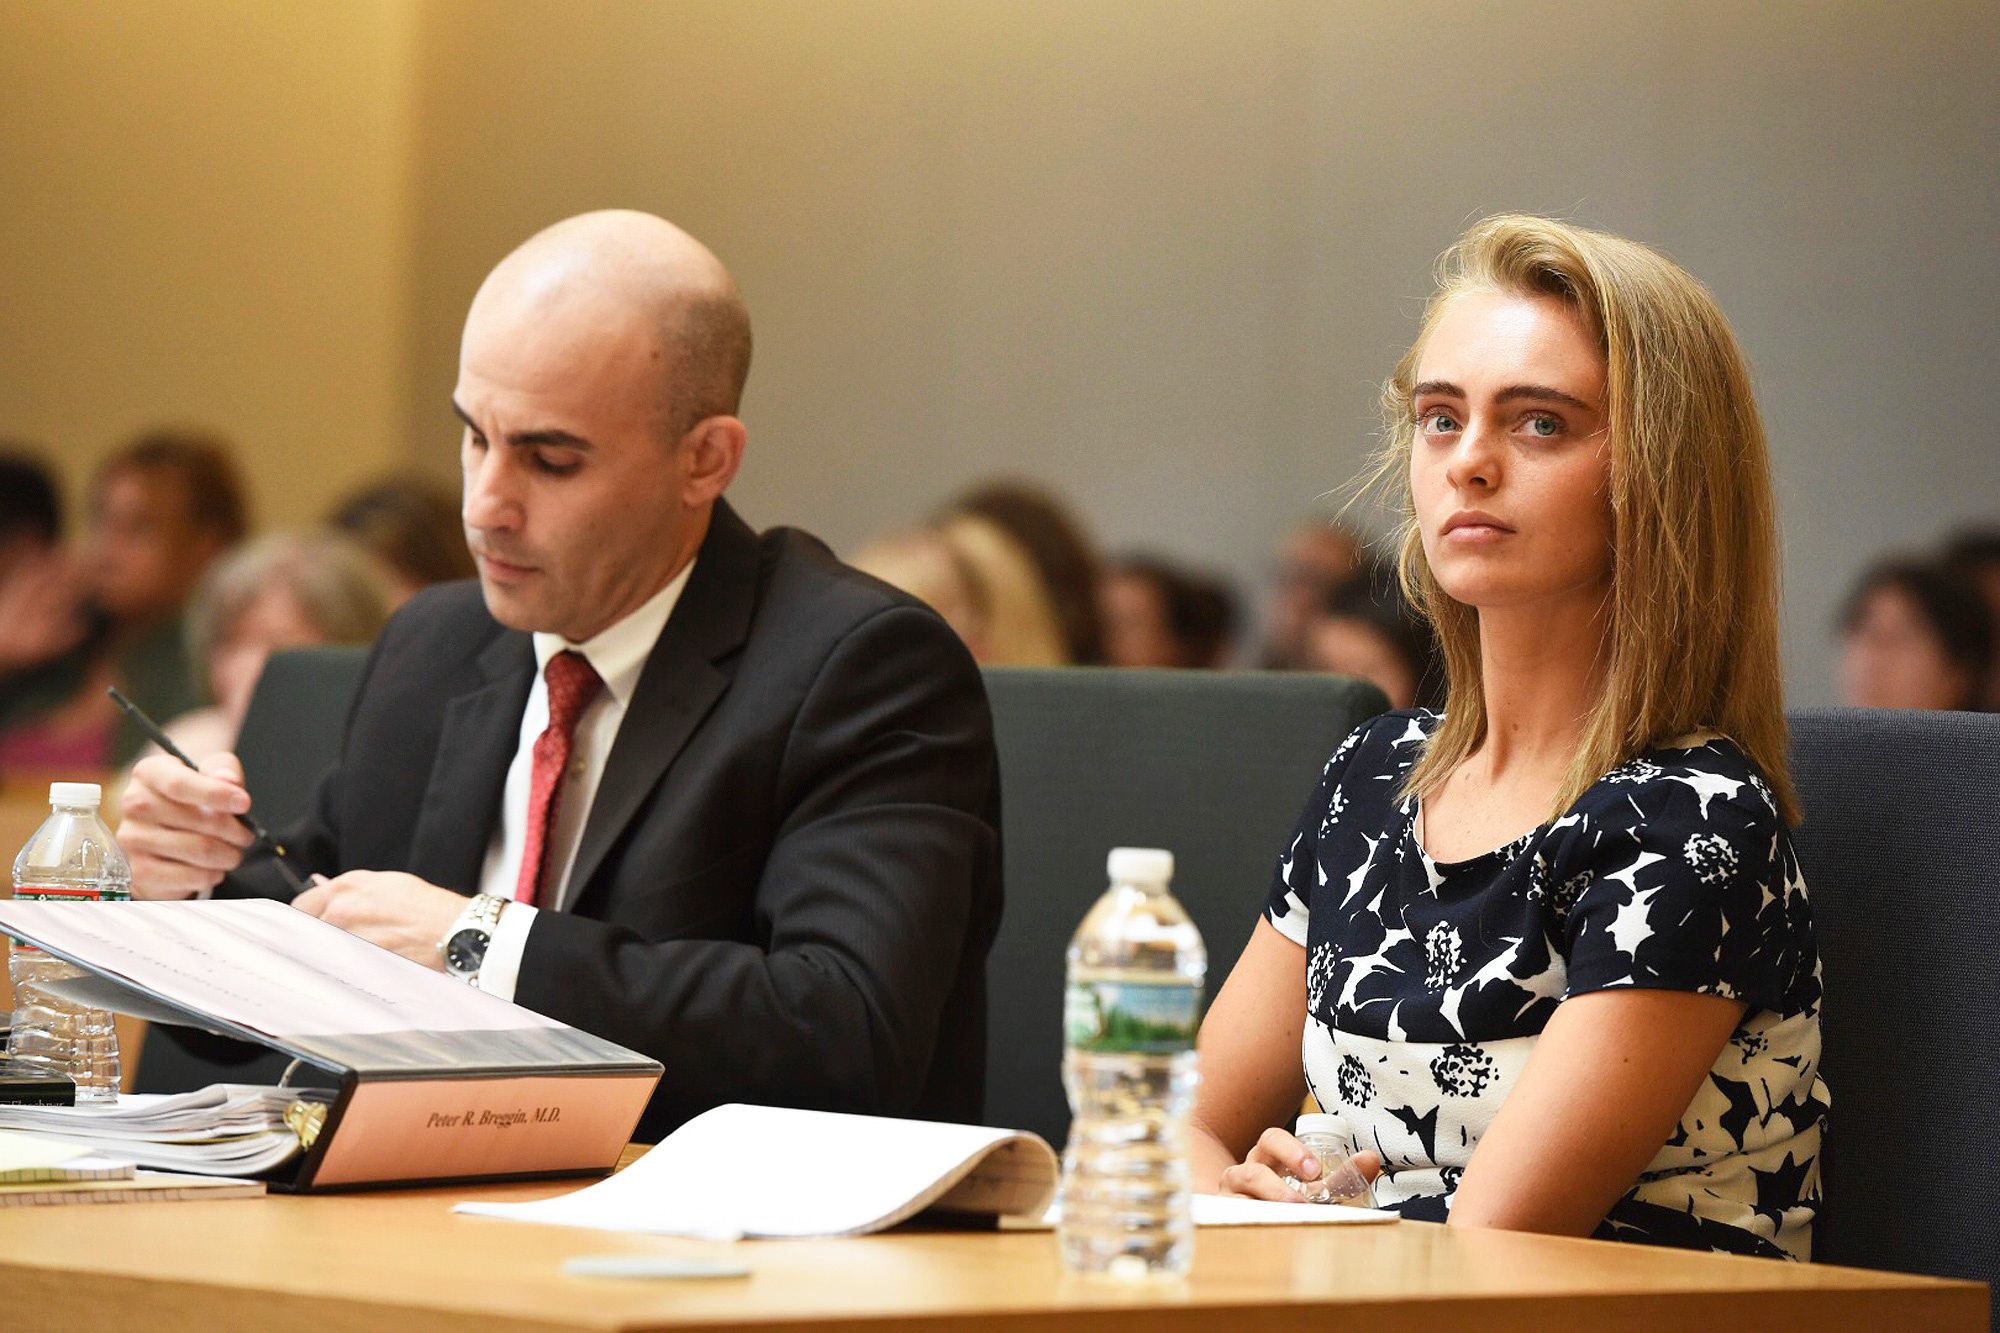 Michelle Carter S Actions Are Heinous But They Are Not